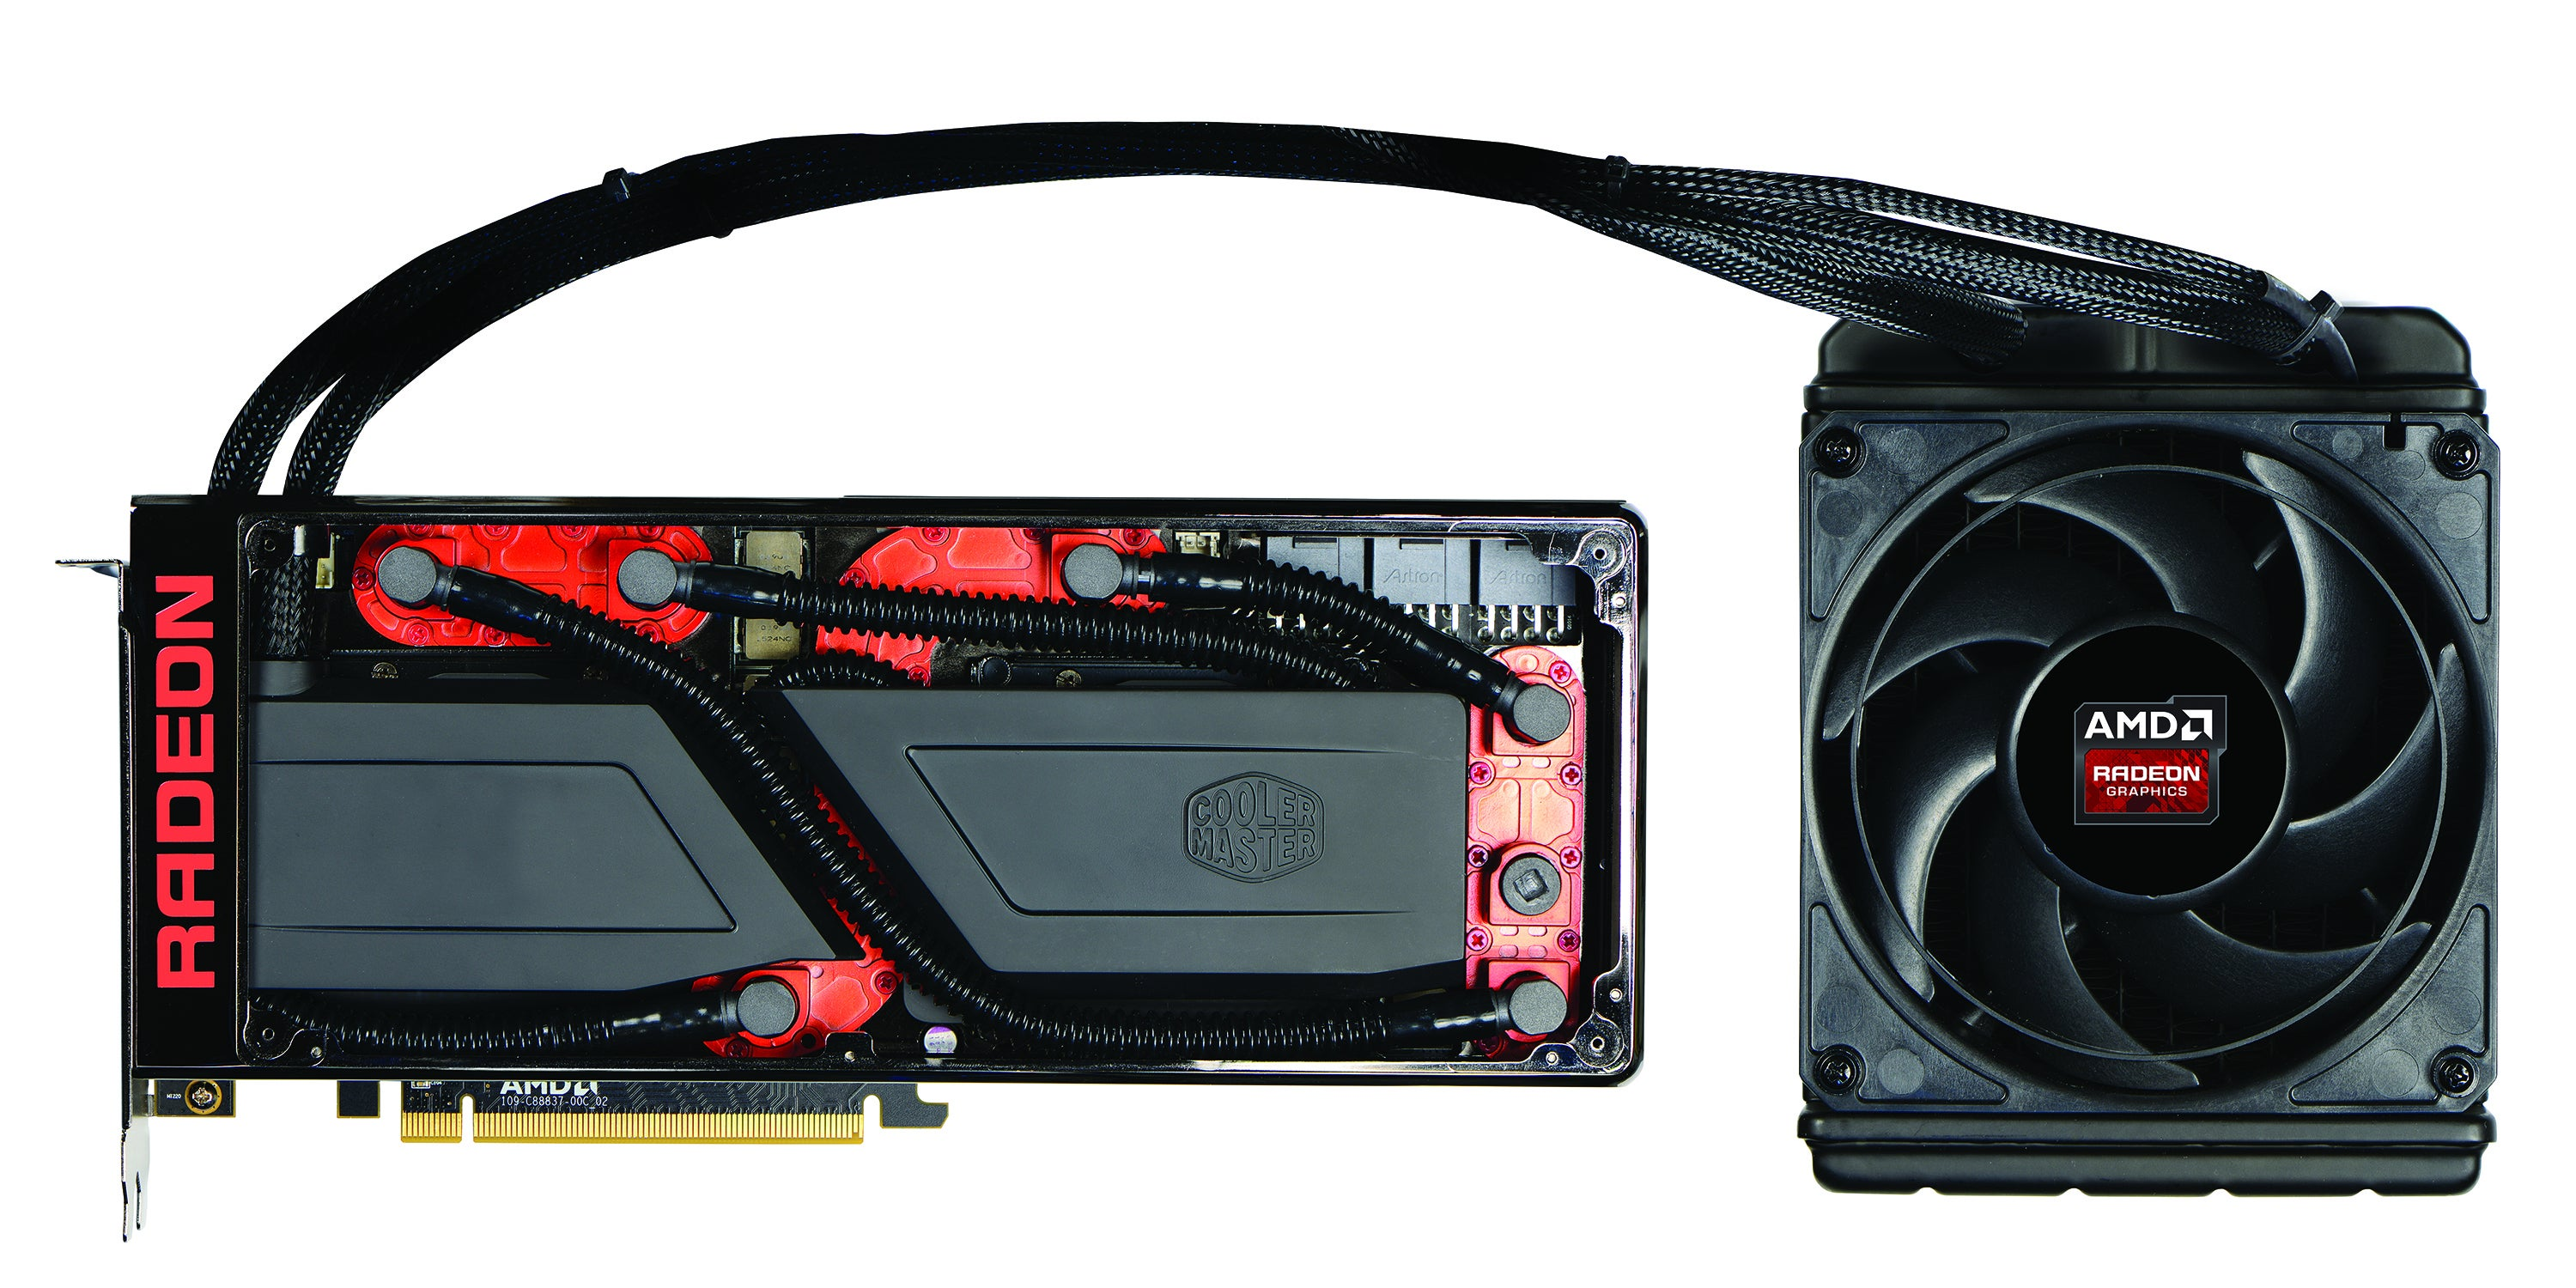 Prices plummet for AMDs beastly Radeon Pro Duo graphics card ahead of Ve ~ Wasbak Pro Duo_113022